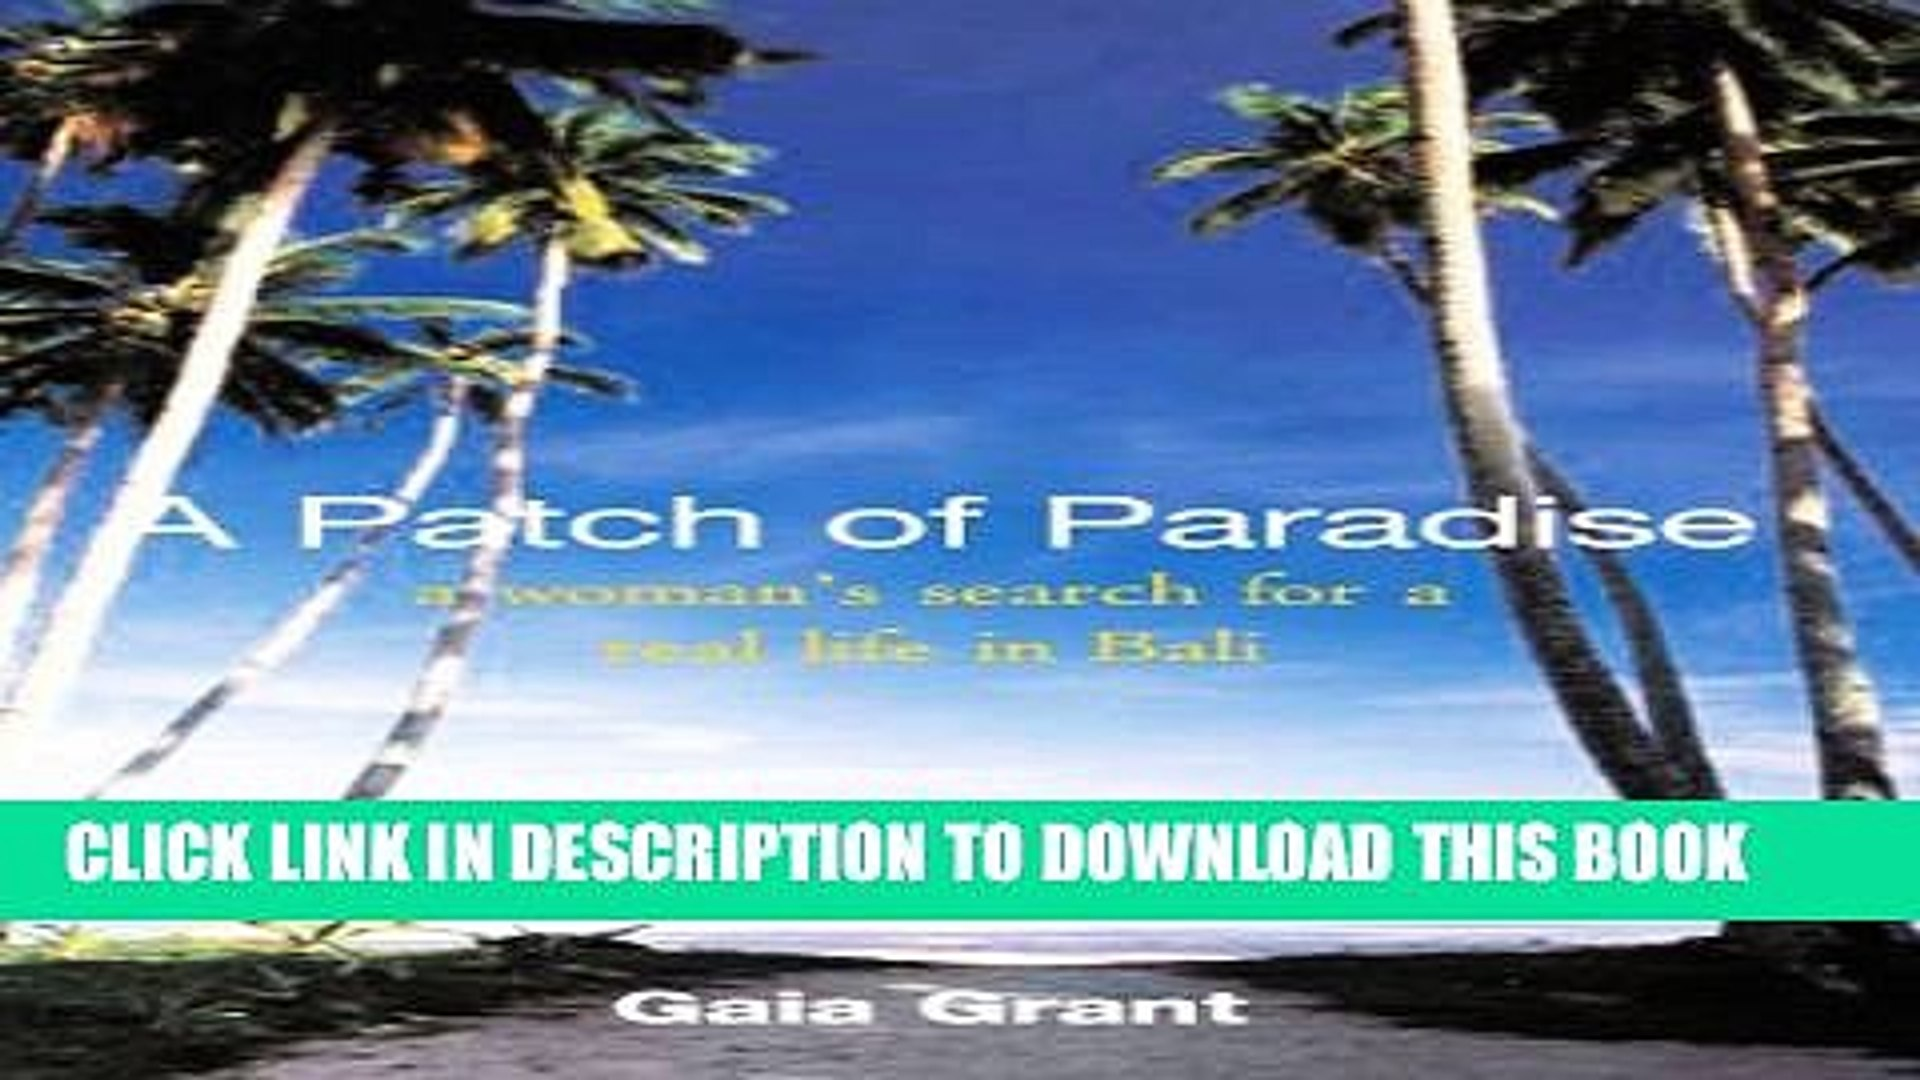 [New] A Patch of Paradise: A woman s search for a real life in Bali. Exclusive Full Ebook